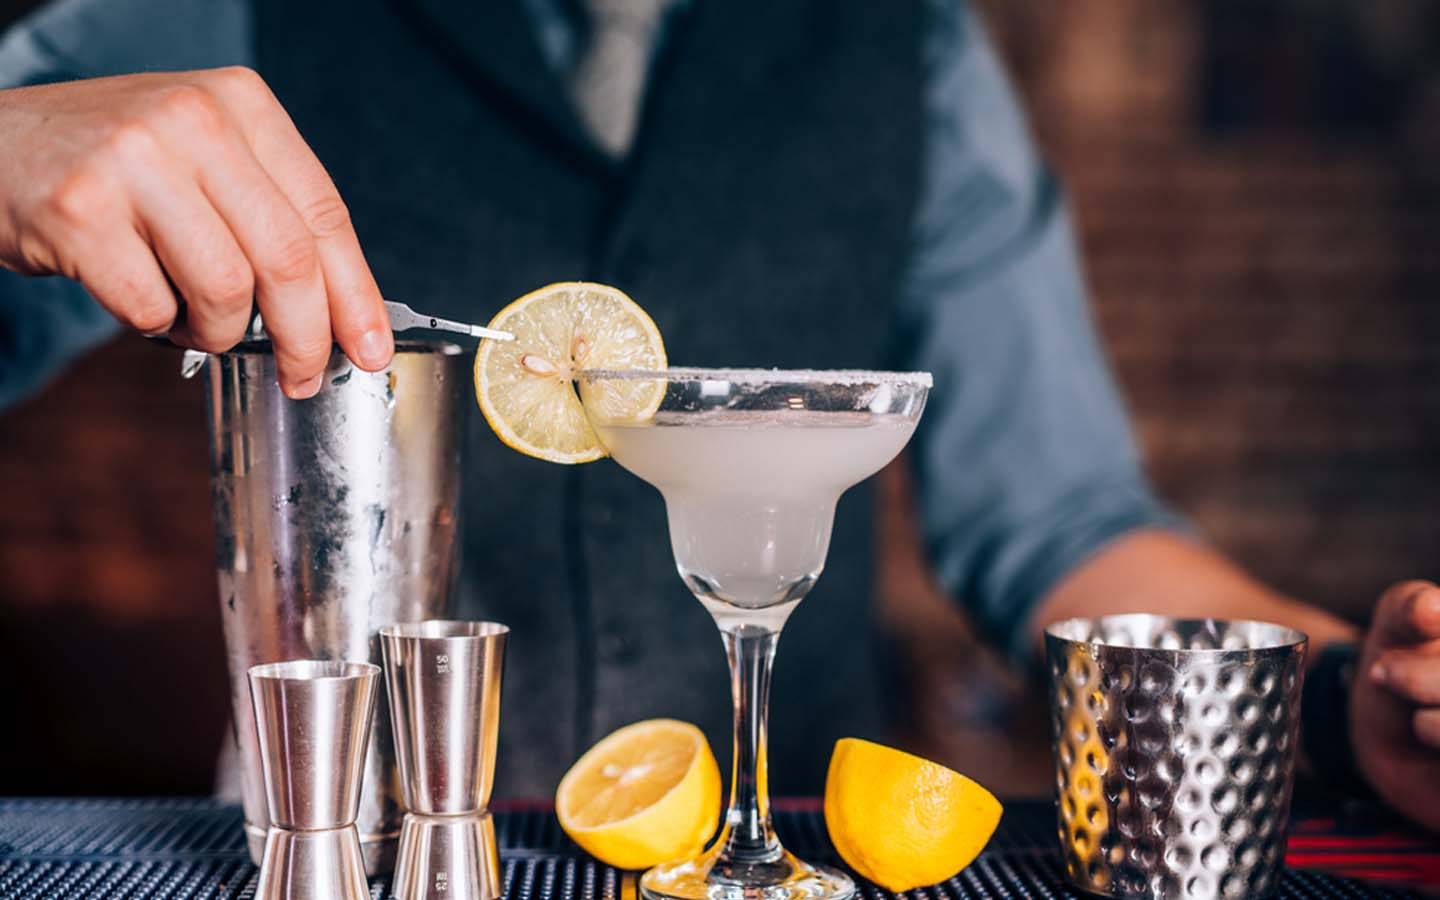 Bartender making a drink with fresh lemon, vodka and limes